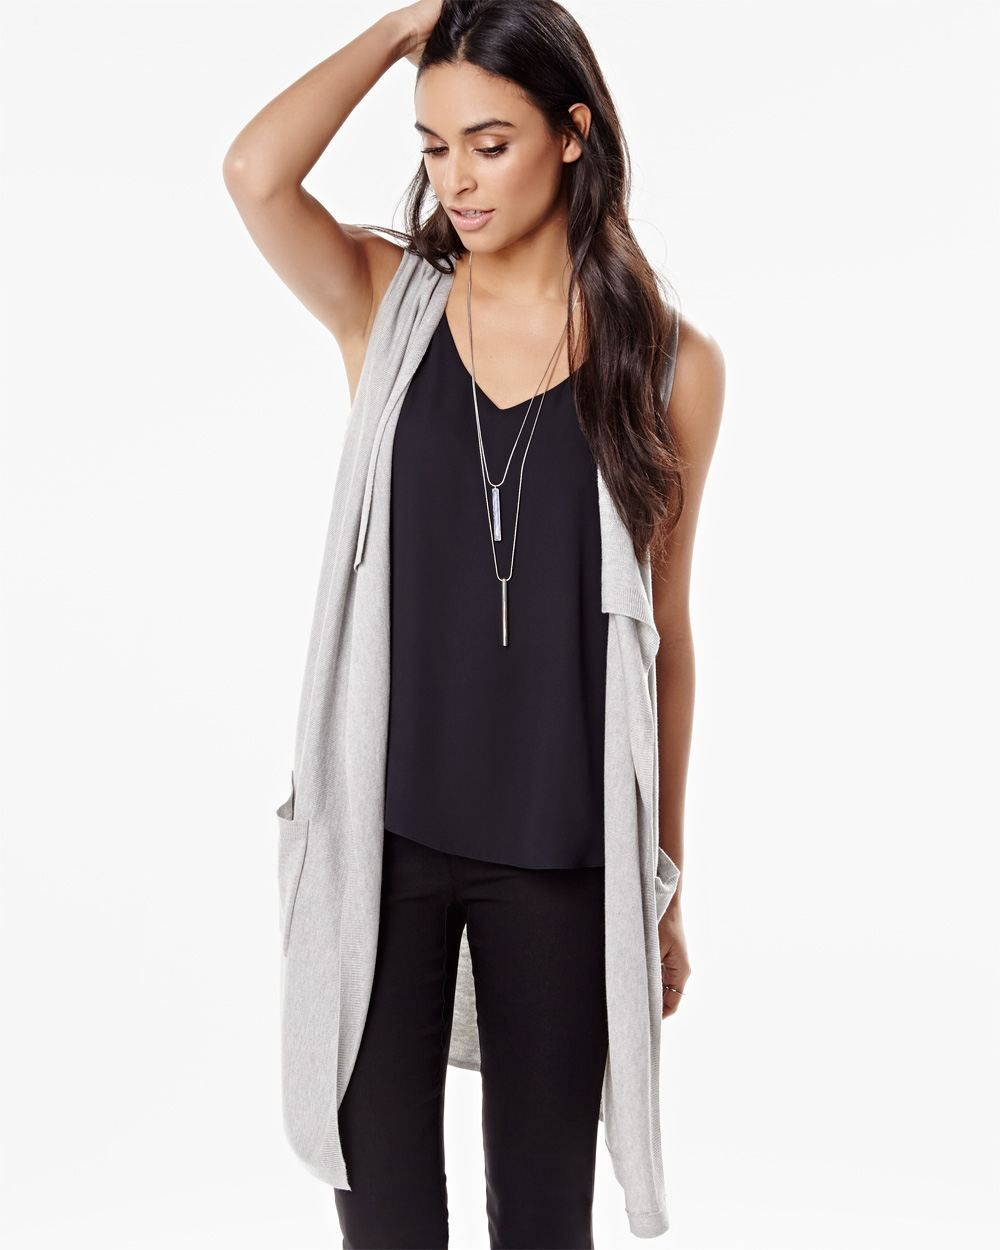 774ebaabaa26e This lightweight and versatile sleeveless cardigan is great for layering.  Try pairing it with a long sleeve shirt